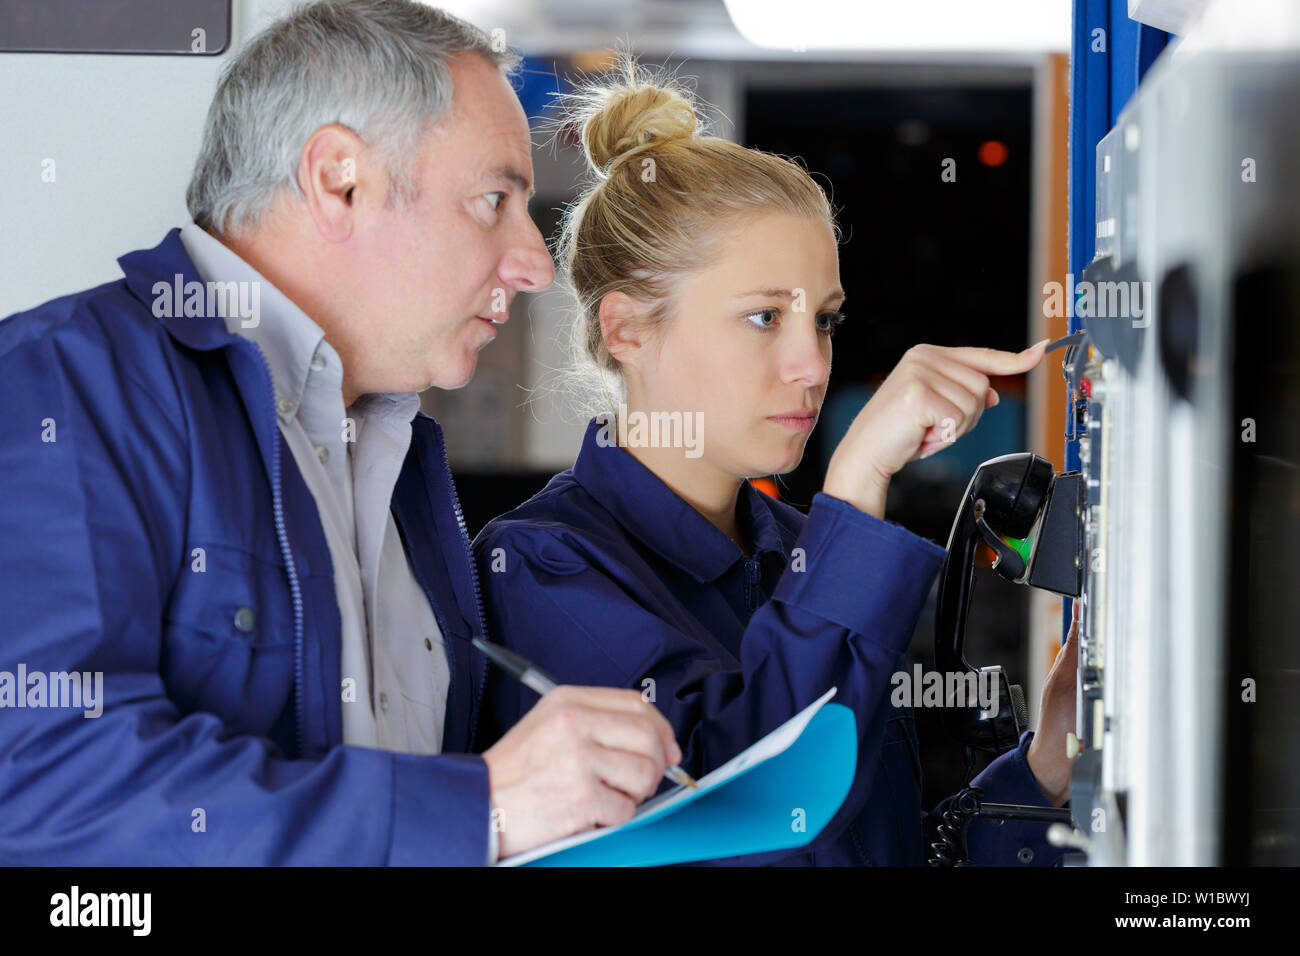 man and woman mechanics work with the appliance - Stock Image